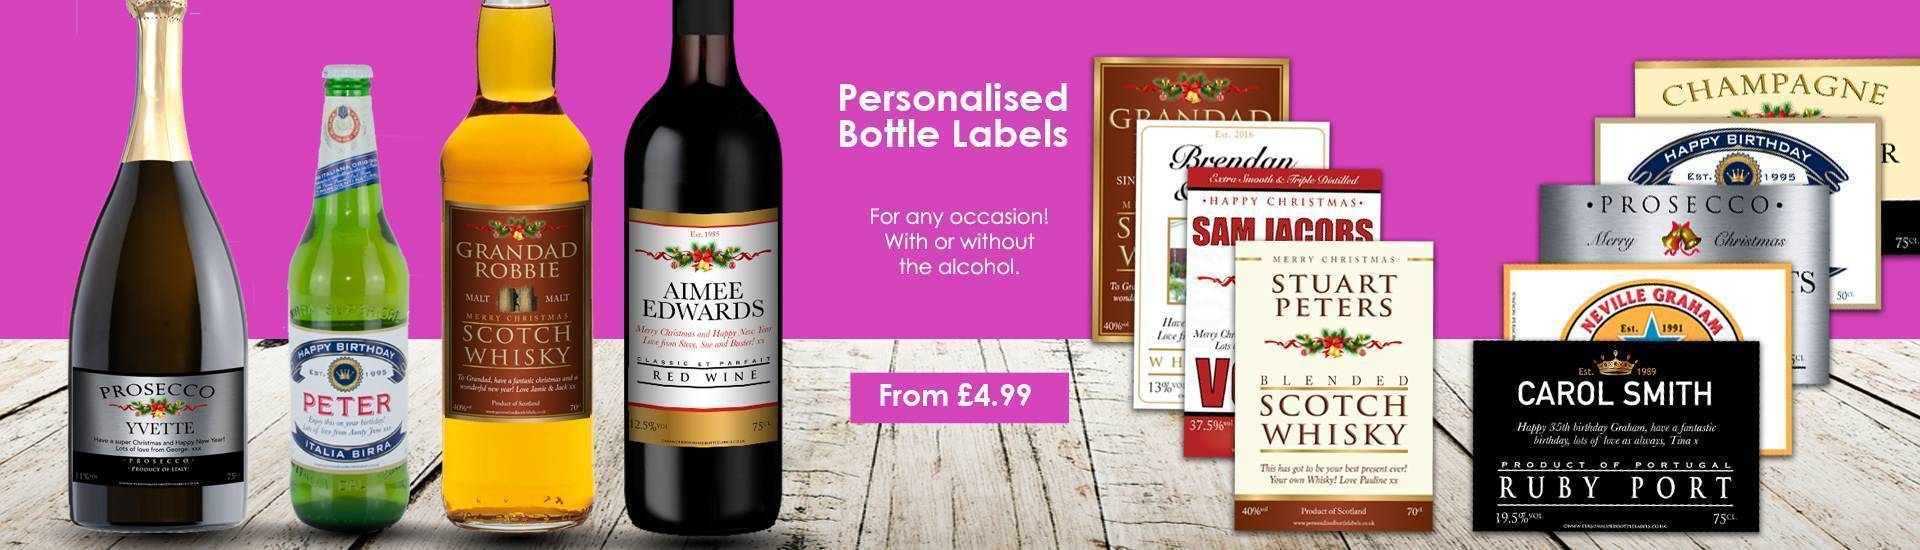 Personalised Bottle Labels